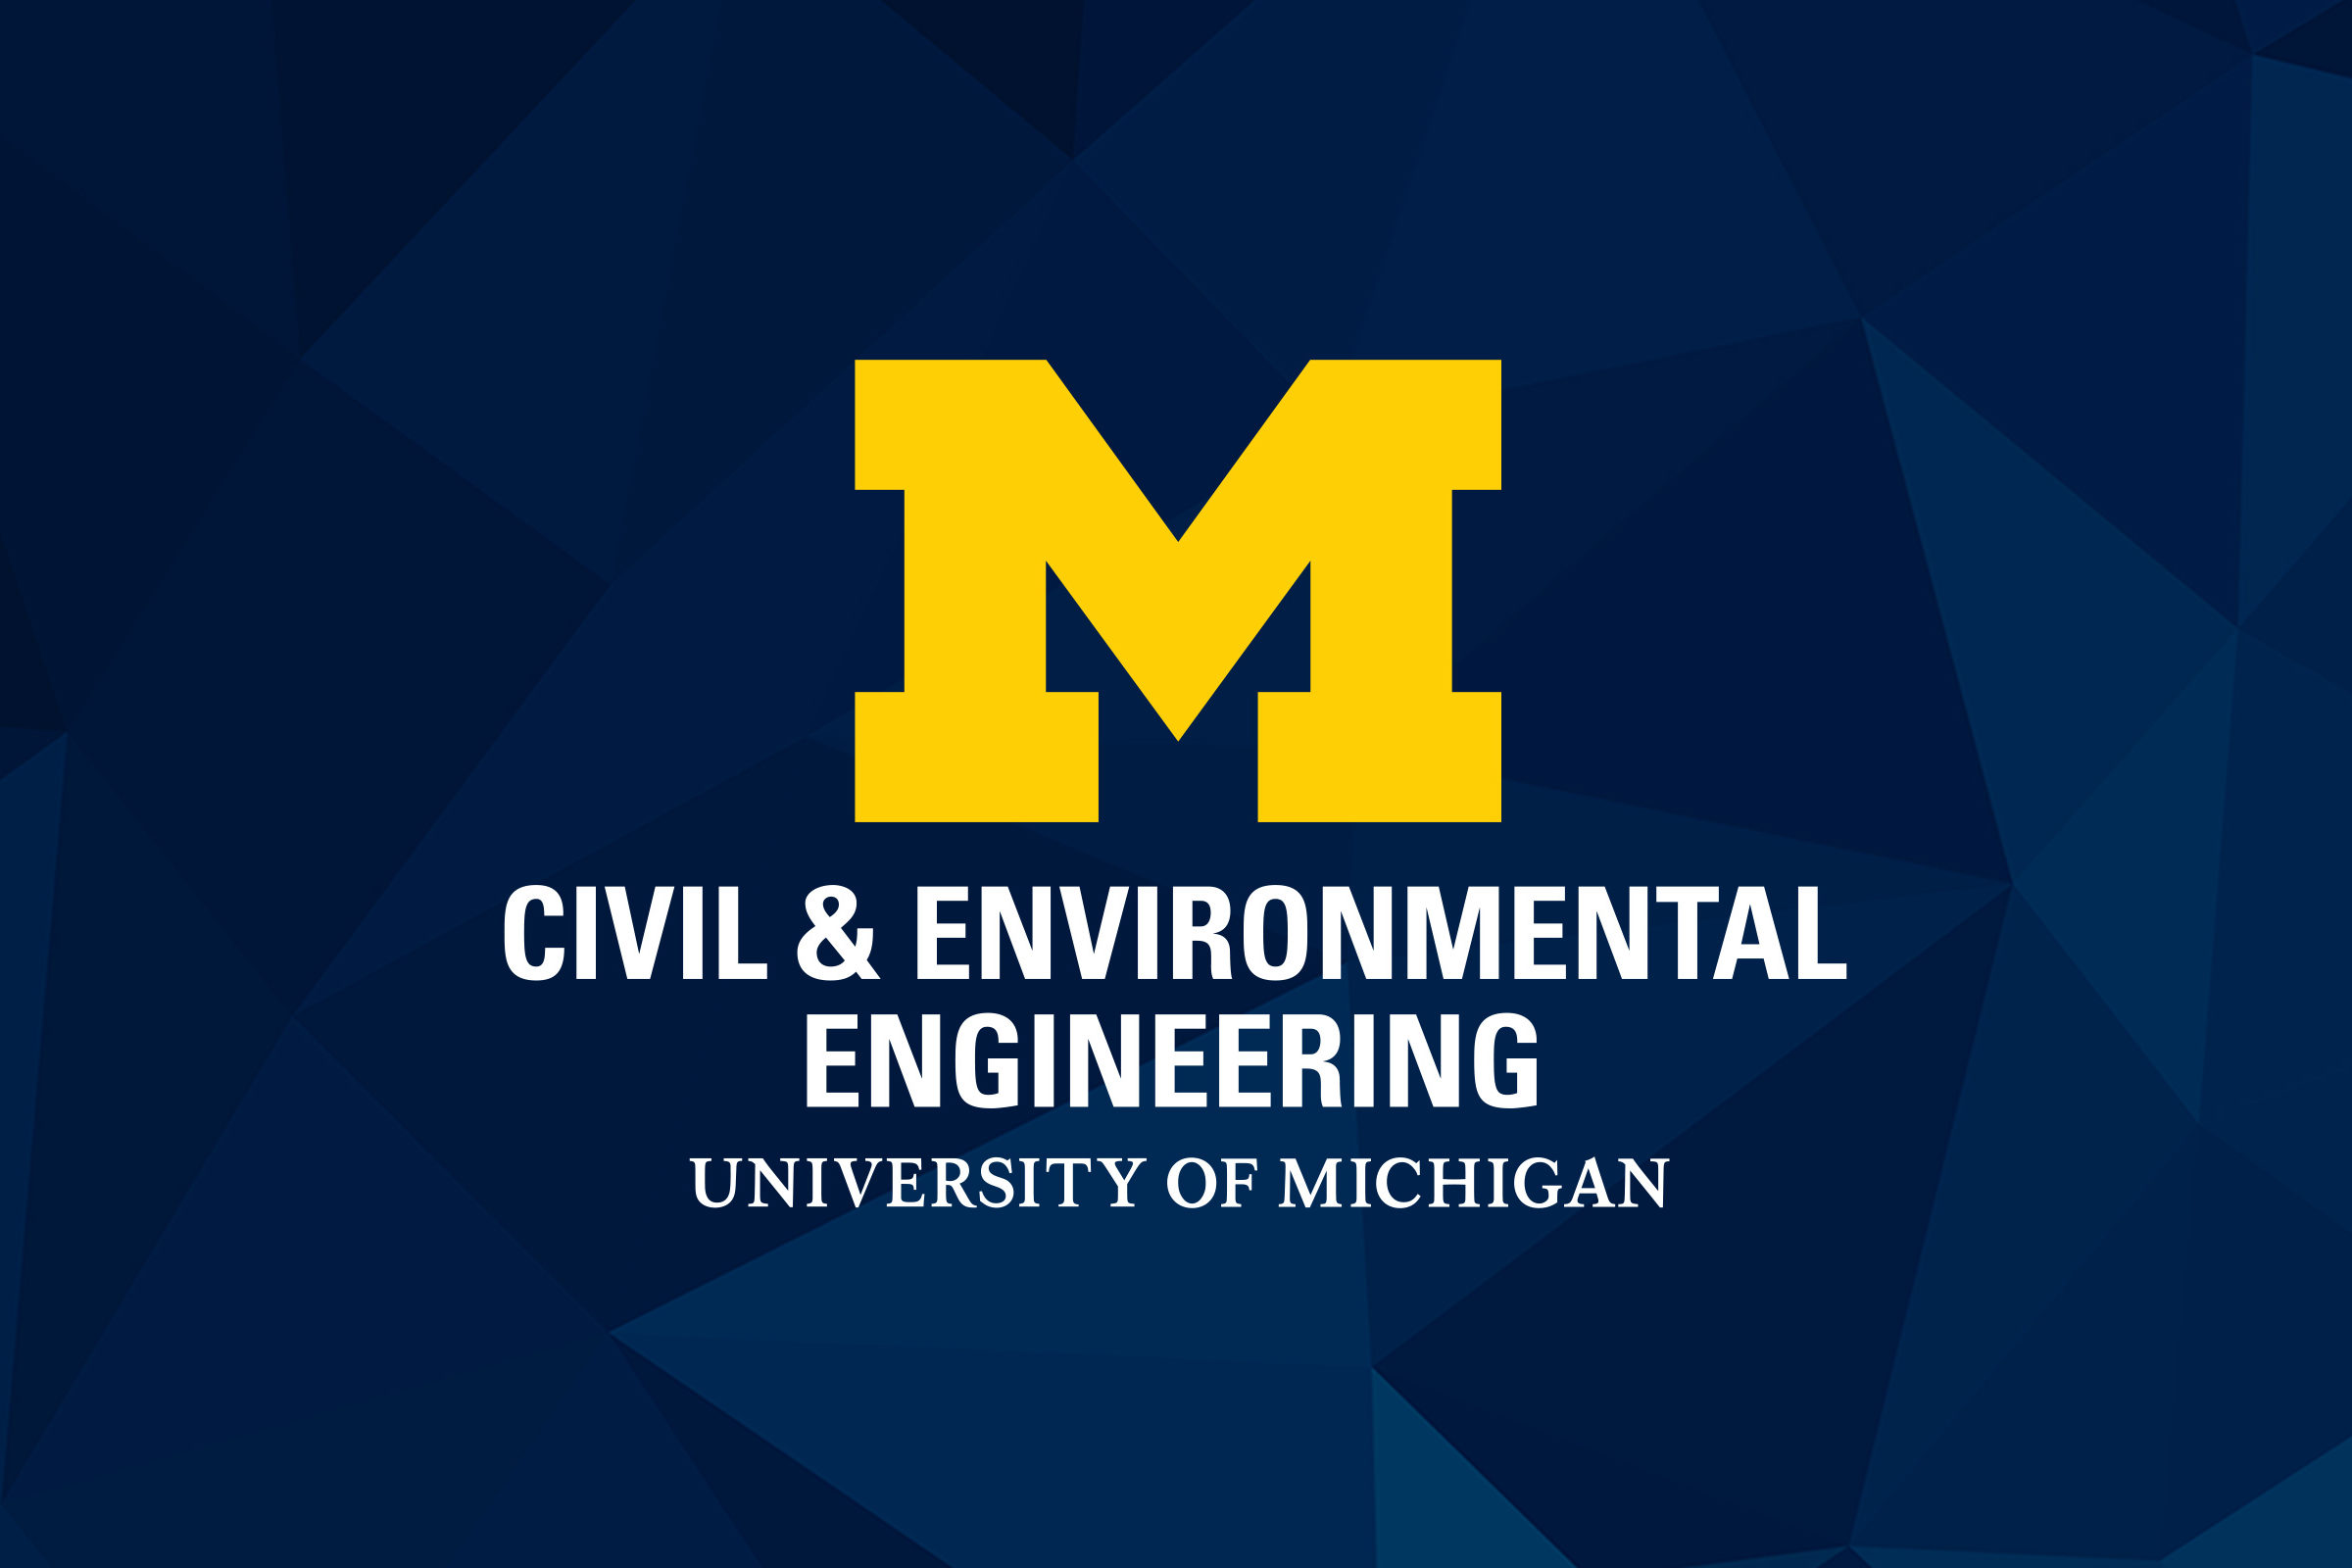 Civil & Environmental Engineering logo